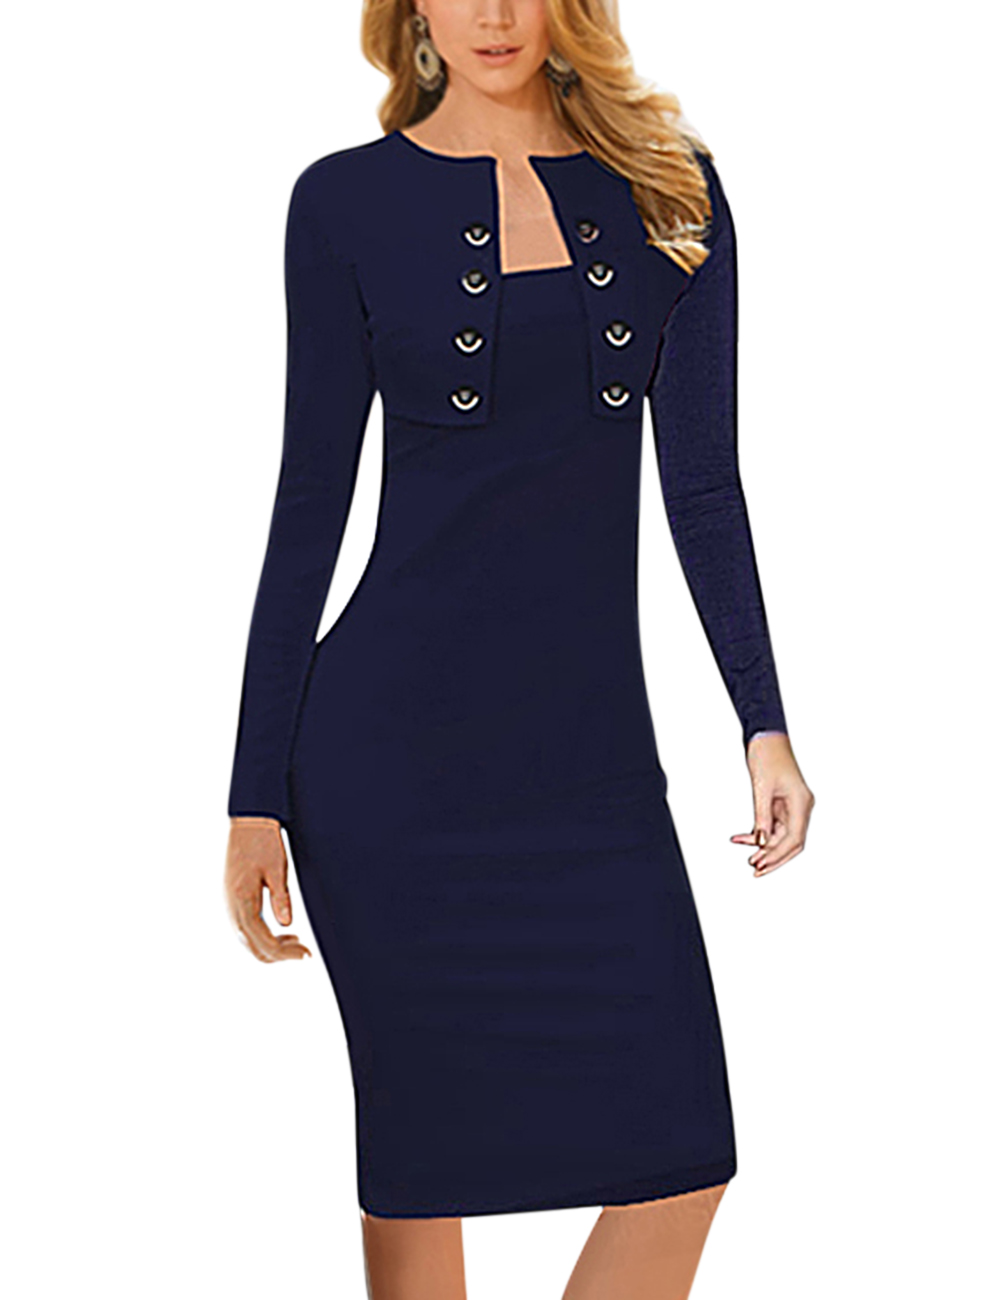 Women Double-breasted Square Neck Long Sleeve Knee Length Bodycon Pencil Dress Pure Color